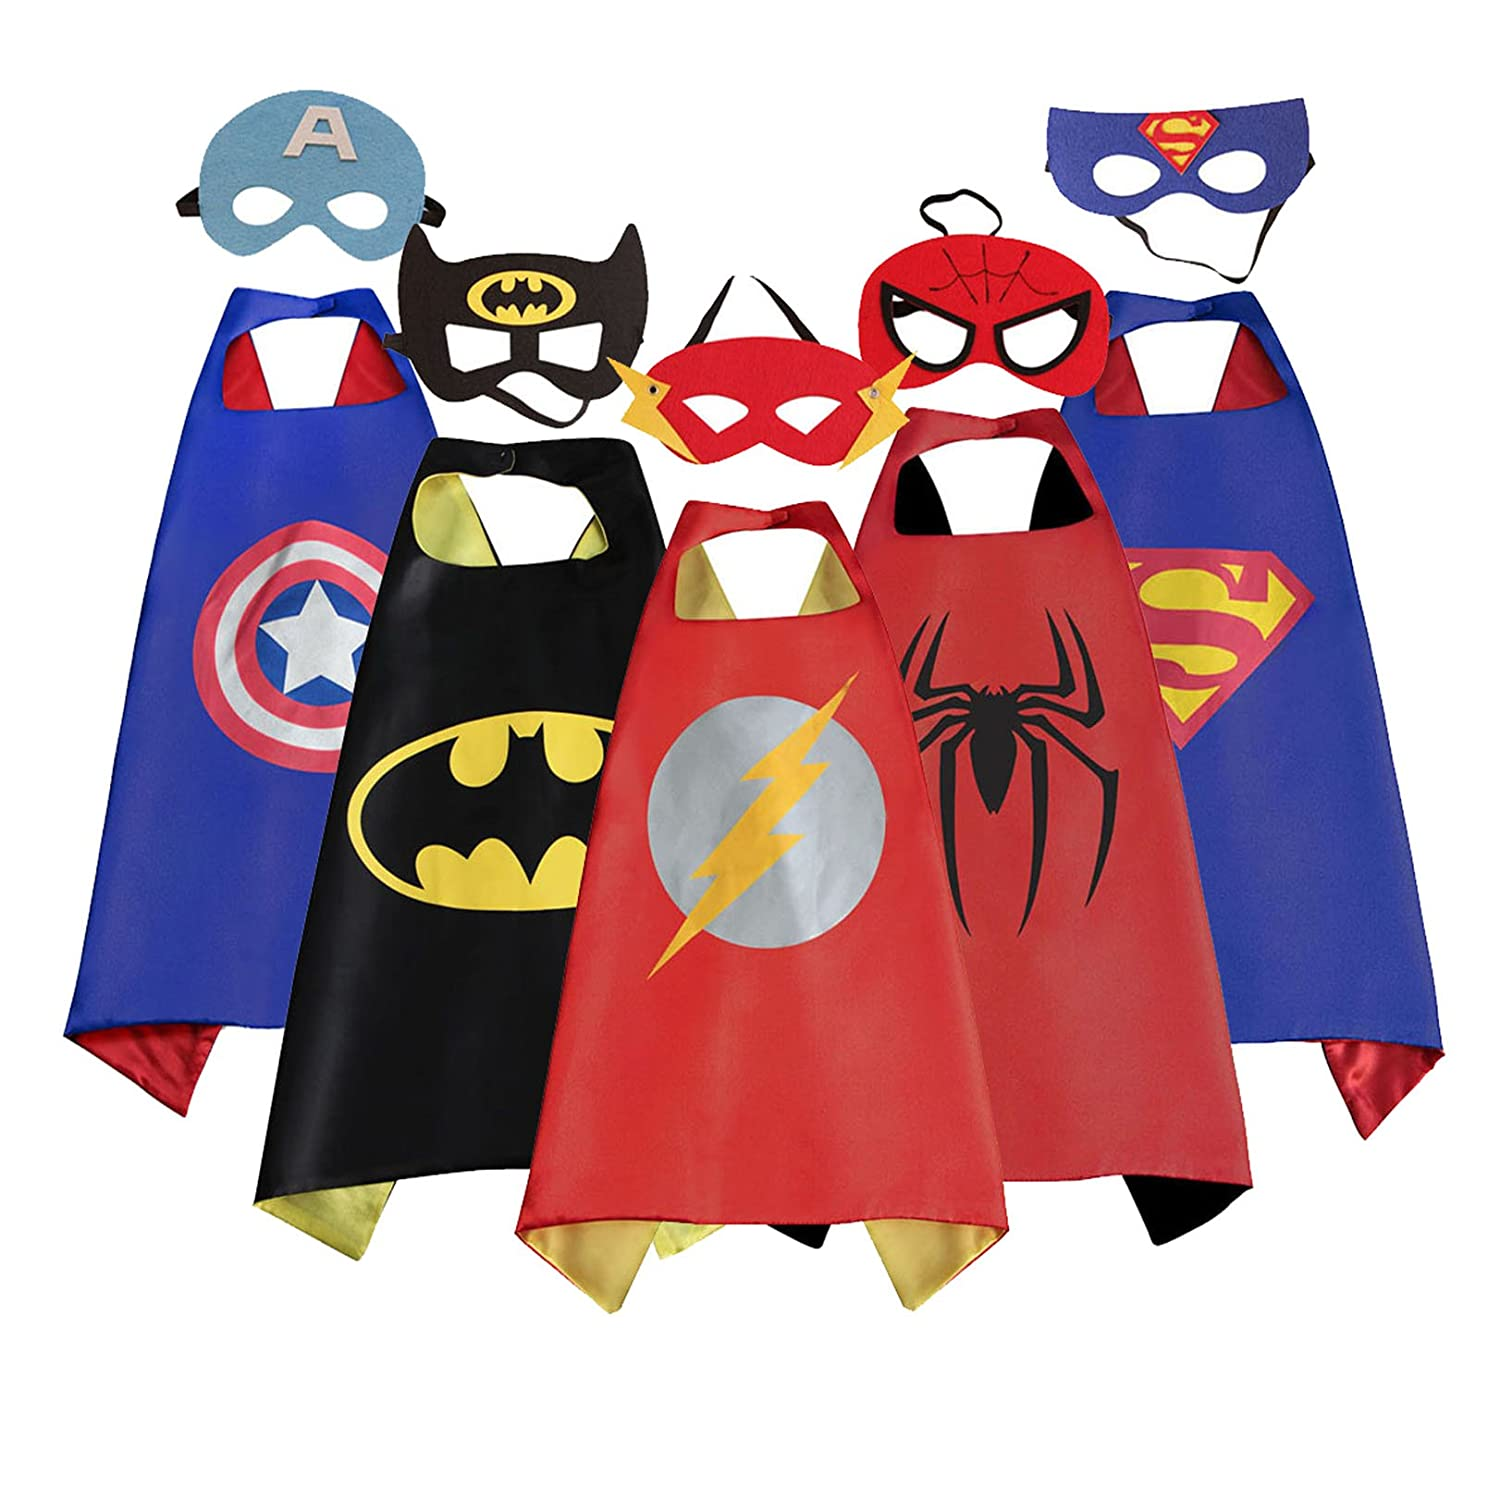 Mizzuco Cartoon Dress up Costumes Satin Capes With Felt Masks For Kids